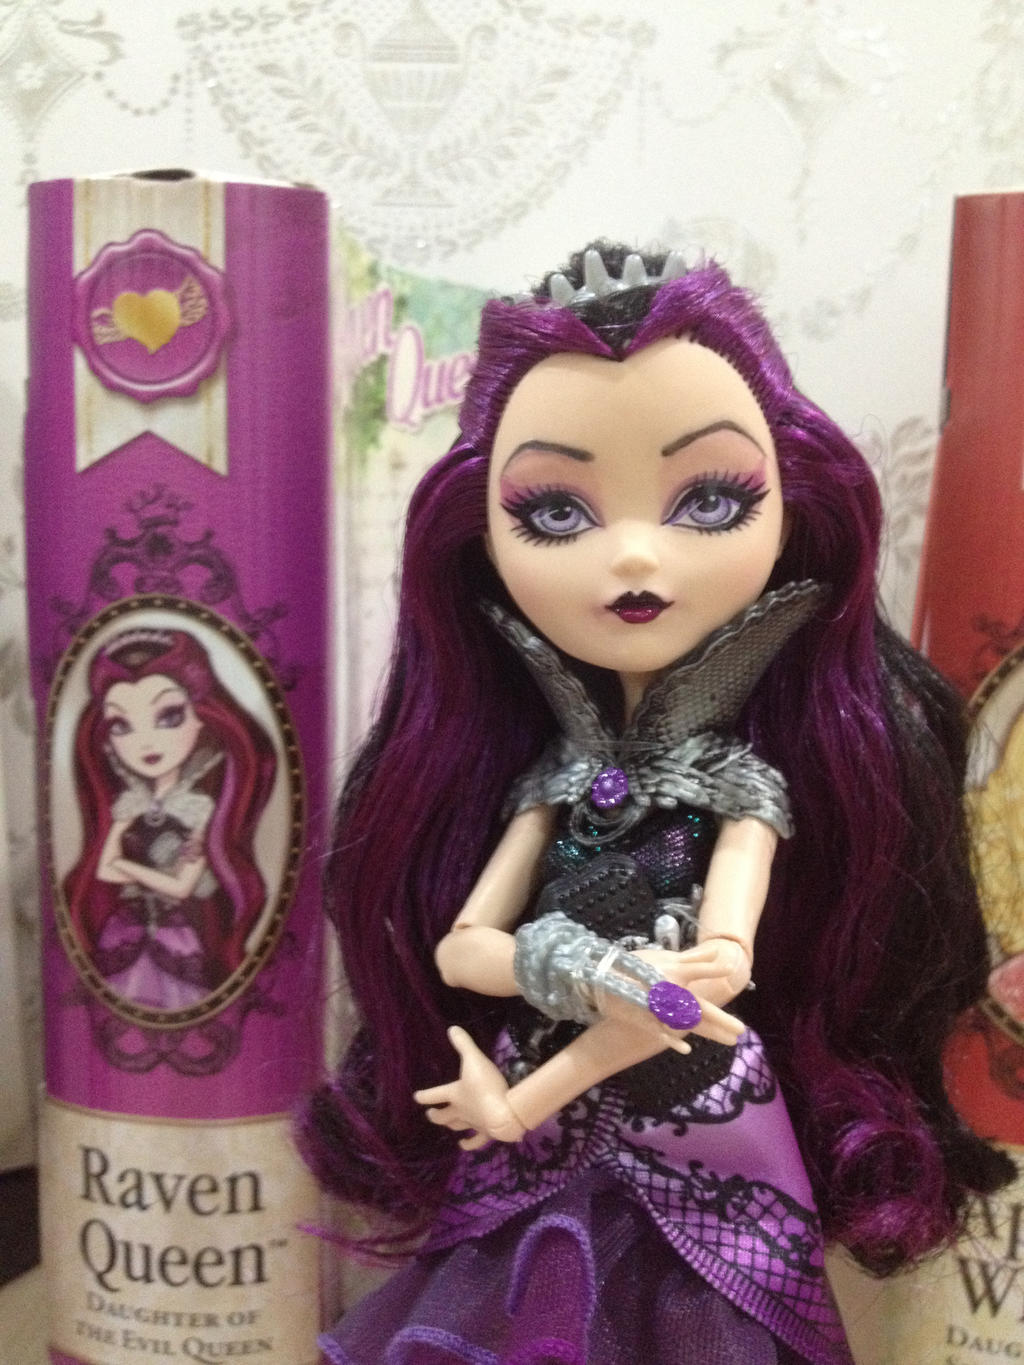 Ever after high raven queen ooak doll by rcoco dolls on deviantart